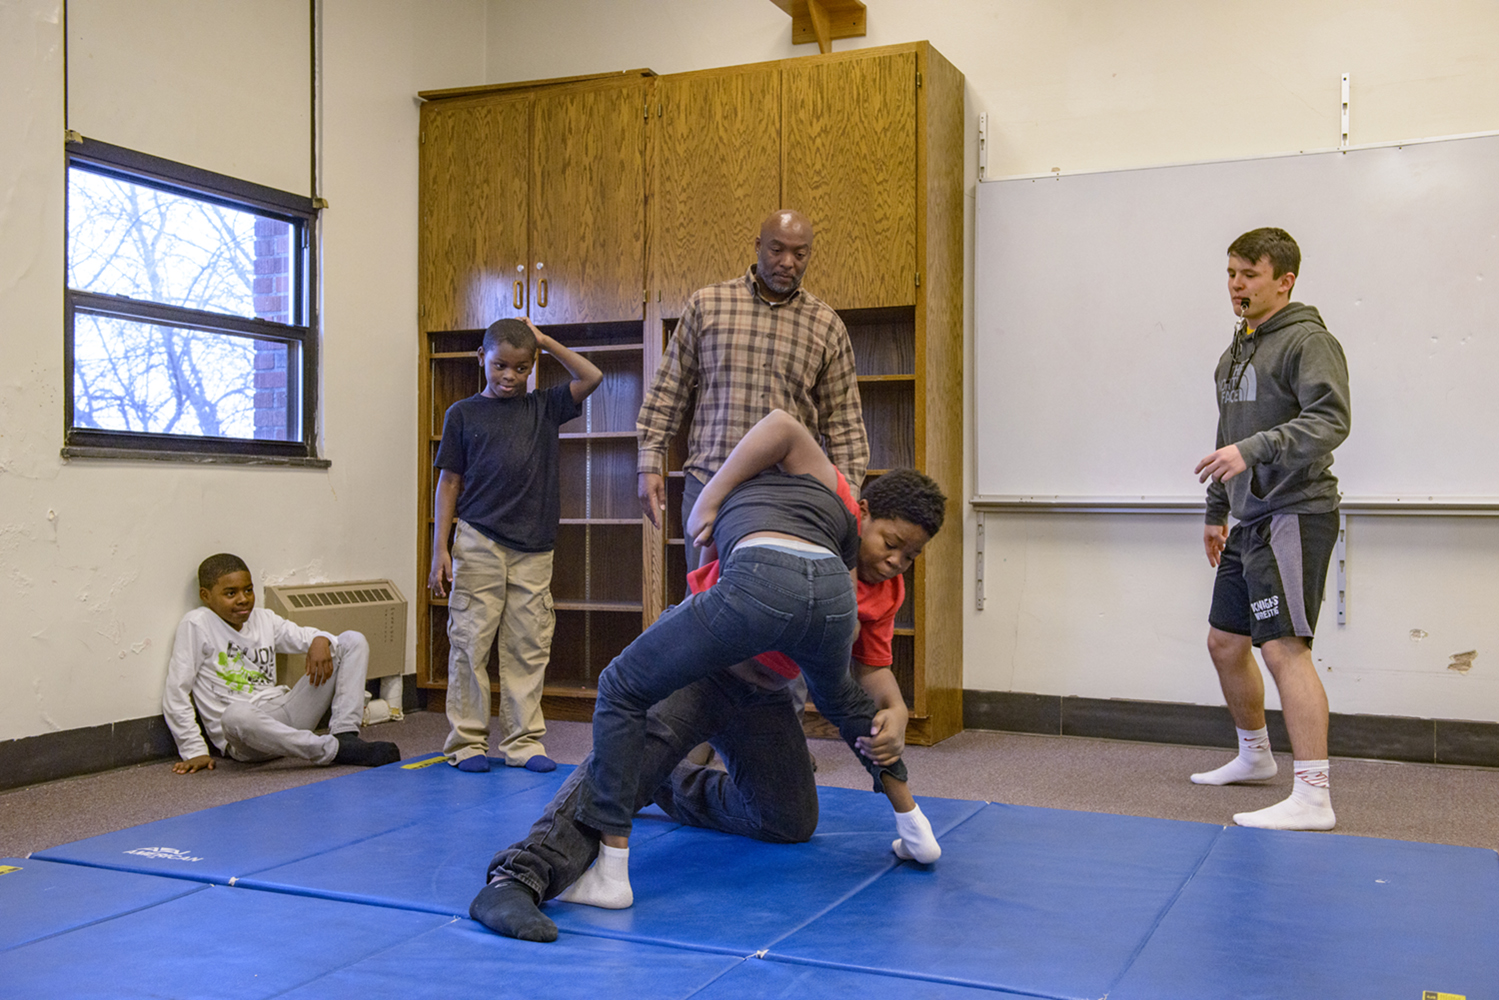 Fifth Ward Saints founder Carlos Honore works with students and volunteer coaches during a wrestling practice at Theodore Roosevelt Education Center on Monday, December 10, 2018. Fifth Ward Saints provides social-services alongside a variety of athletic and activity based after school programs to at risk students.